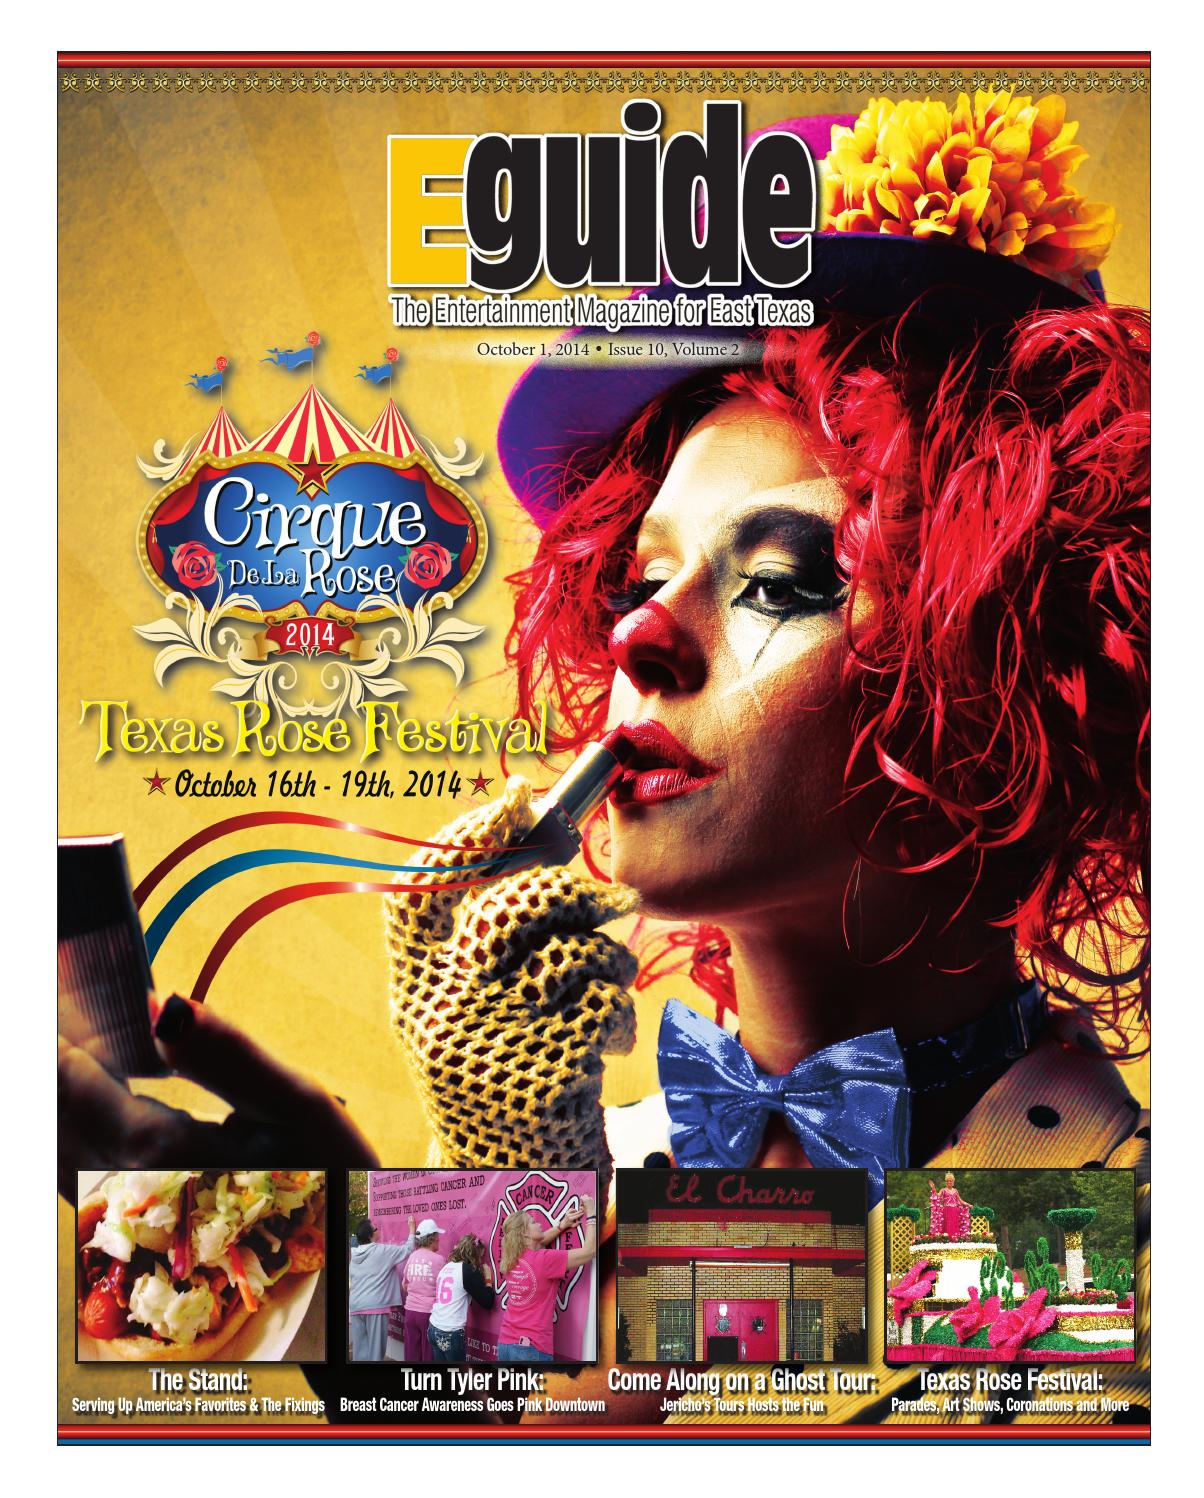 Eguide October 2014 Edition By Eguide Magazine Issuu